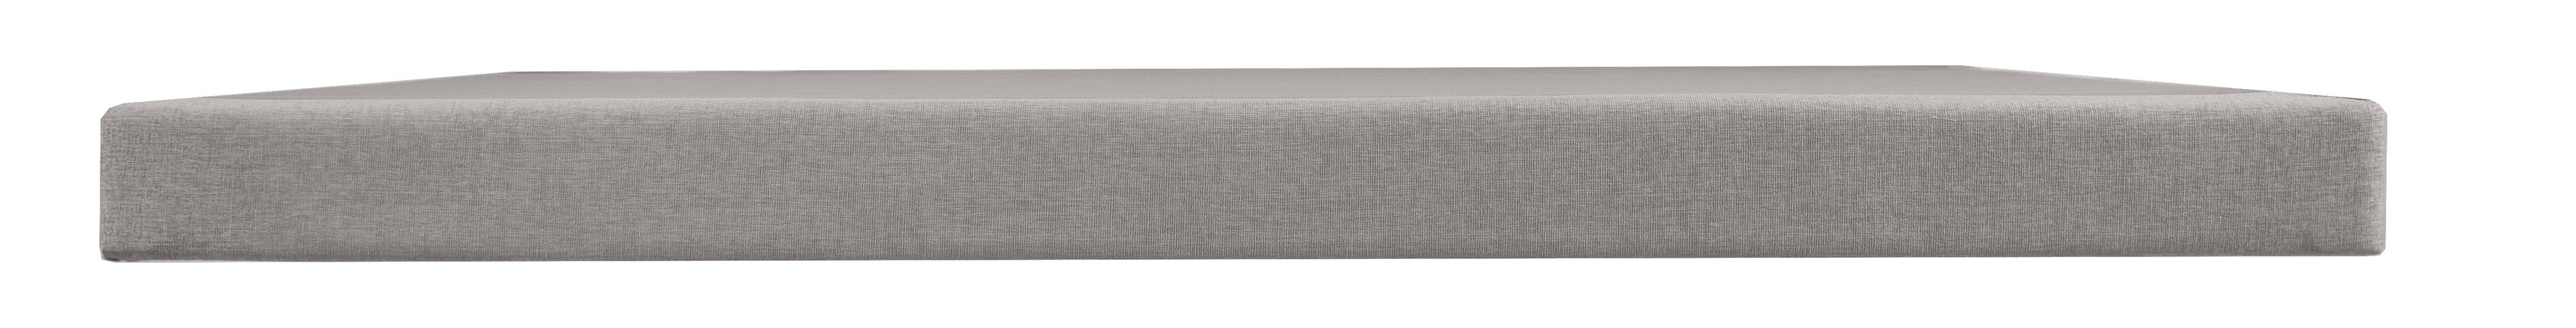 Tempur-Pedic® TEMPUR-Flat Foundation TEMPUR-Flat™ Low Profile Foundation - Item Number: 21510130